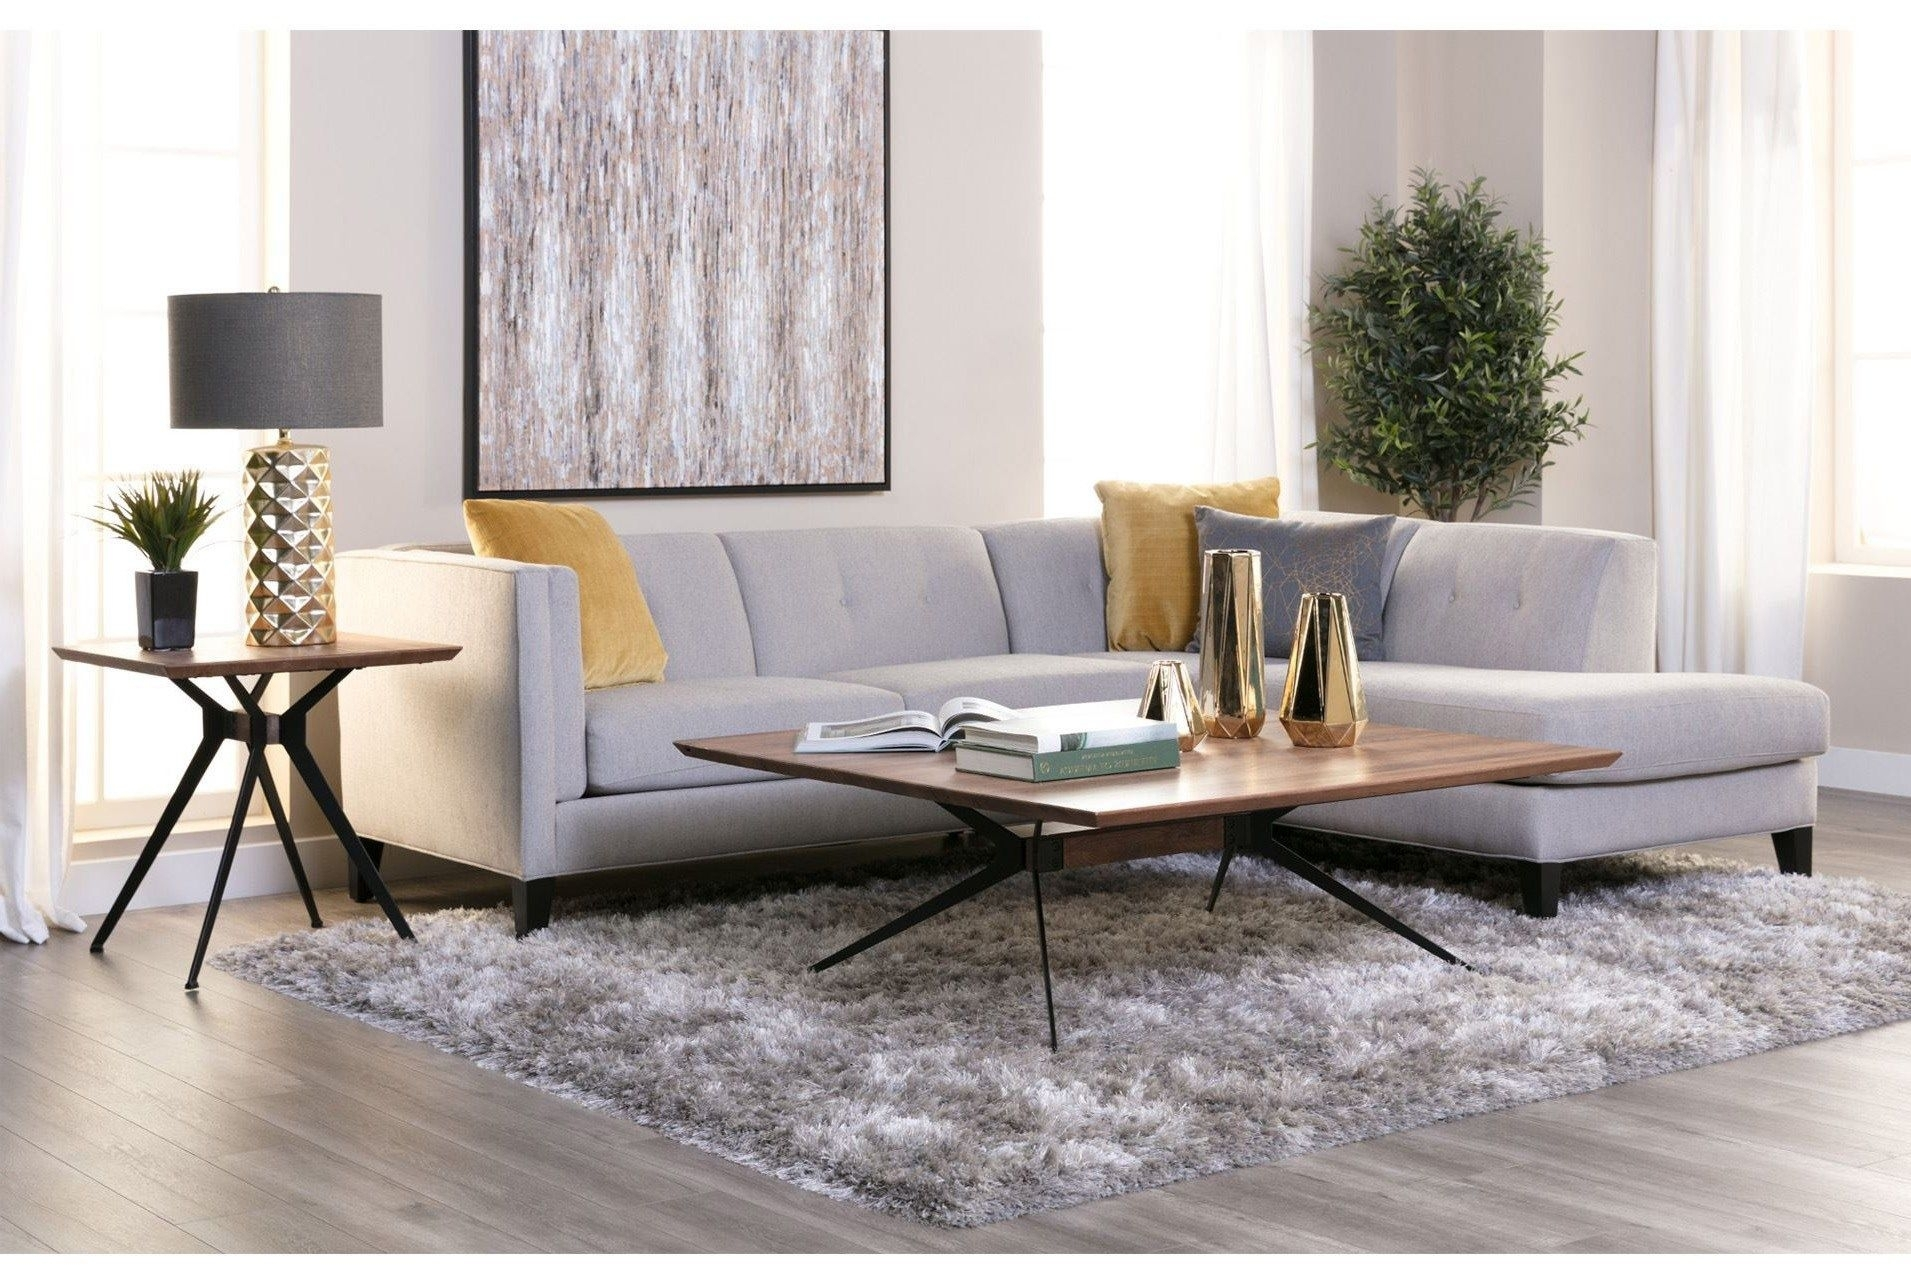 Avery 2 Piece Sectional W/raf Armless Chaise | Livingroom Pillow With Regard To Avery 2 Piece Sectionals With Laf Armless Chaise (Image 7 of 25)